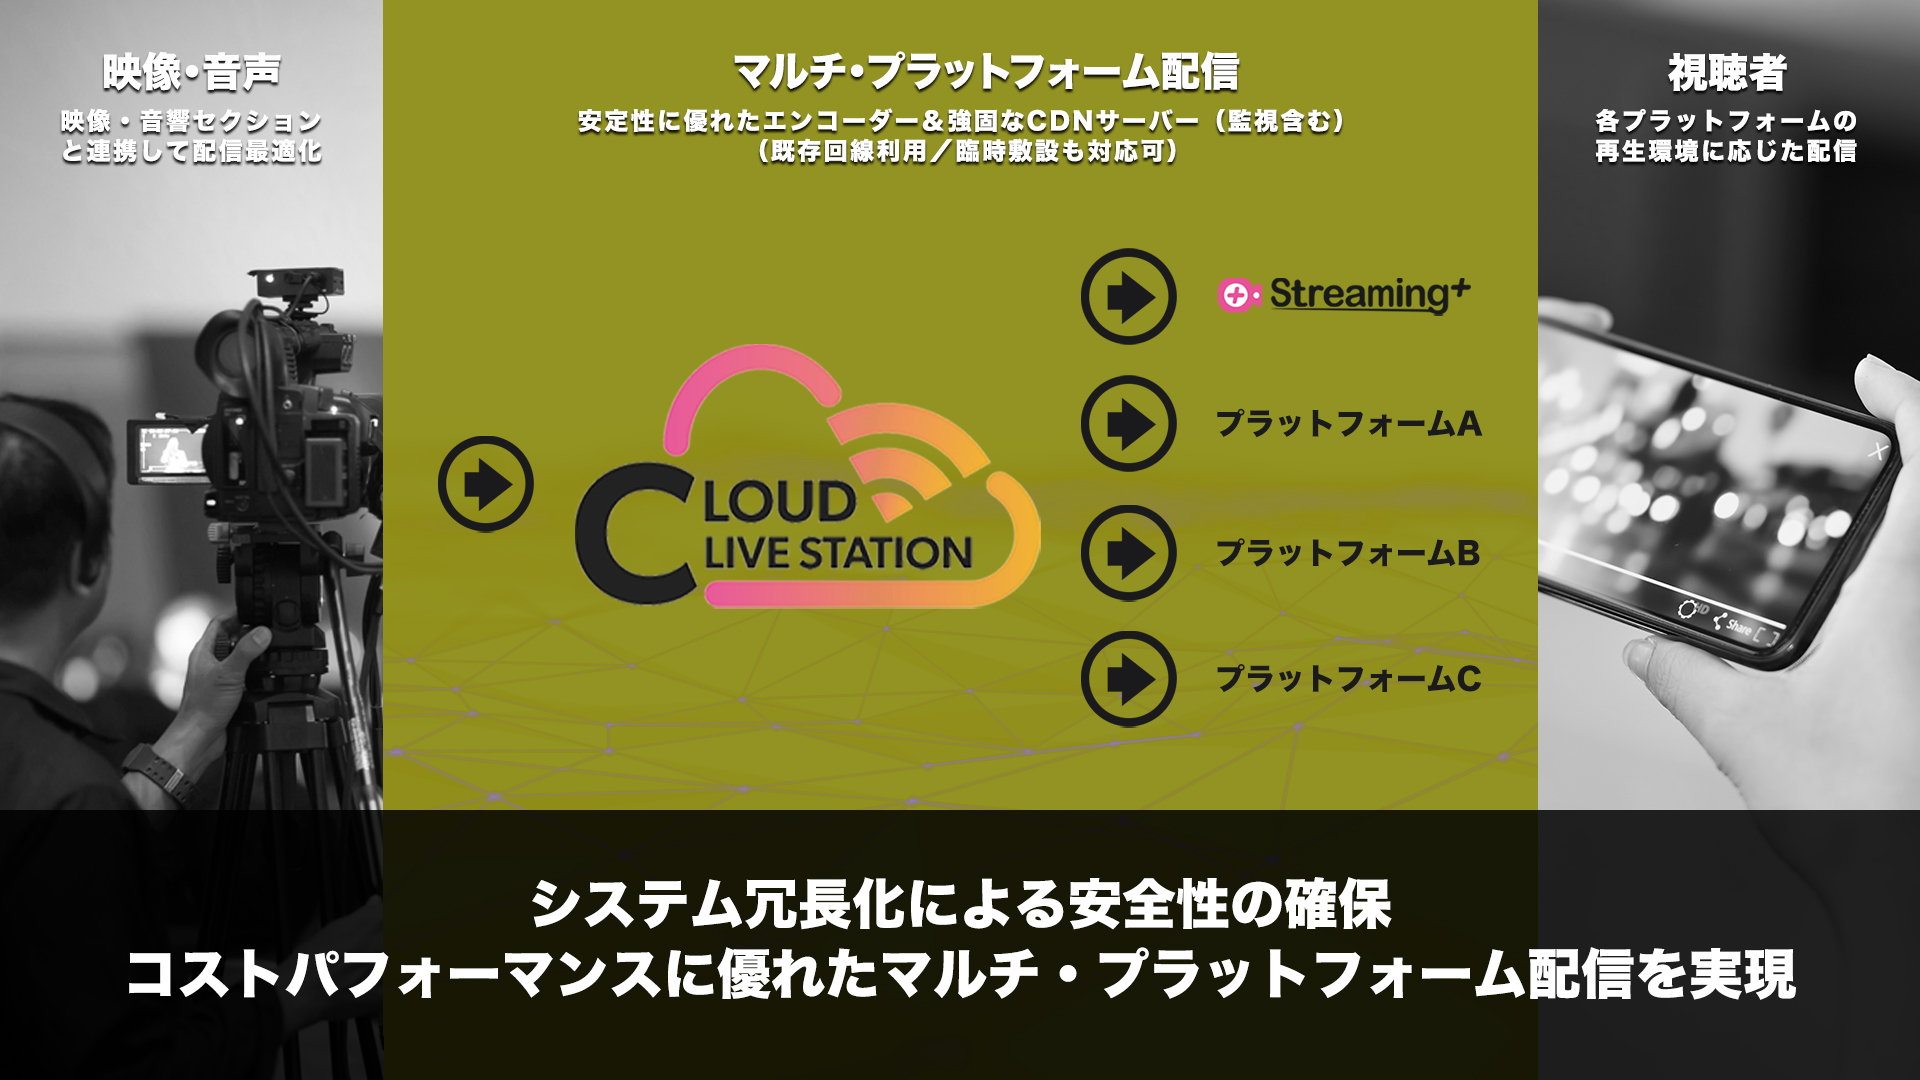 「CLOUD LIVE STATION」概要